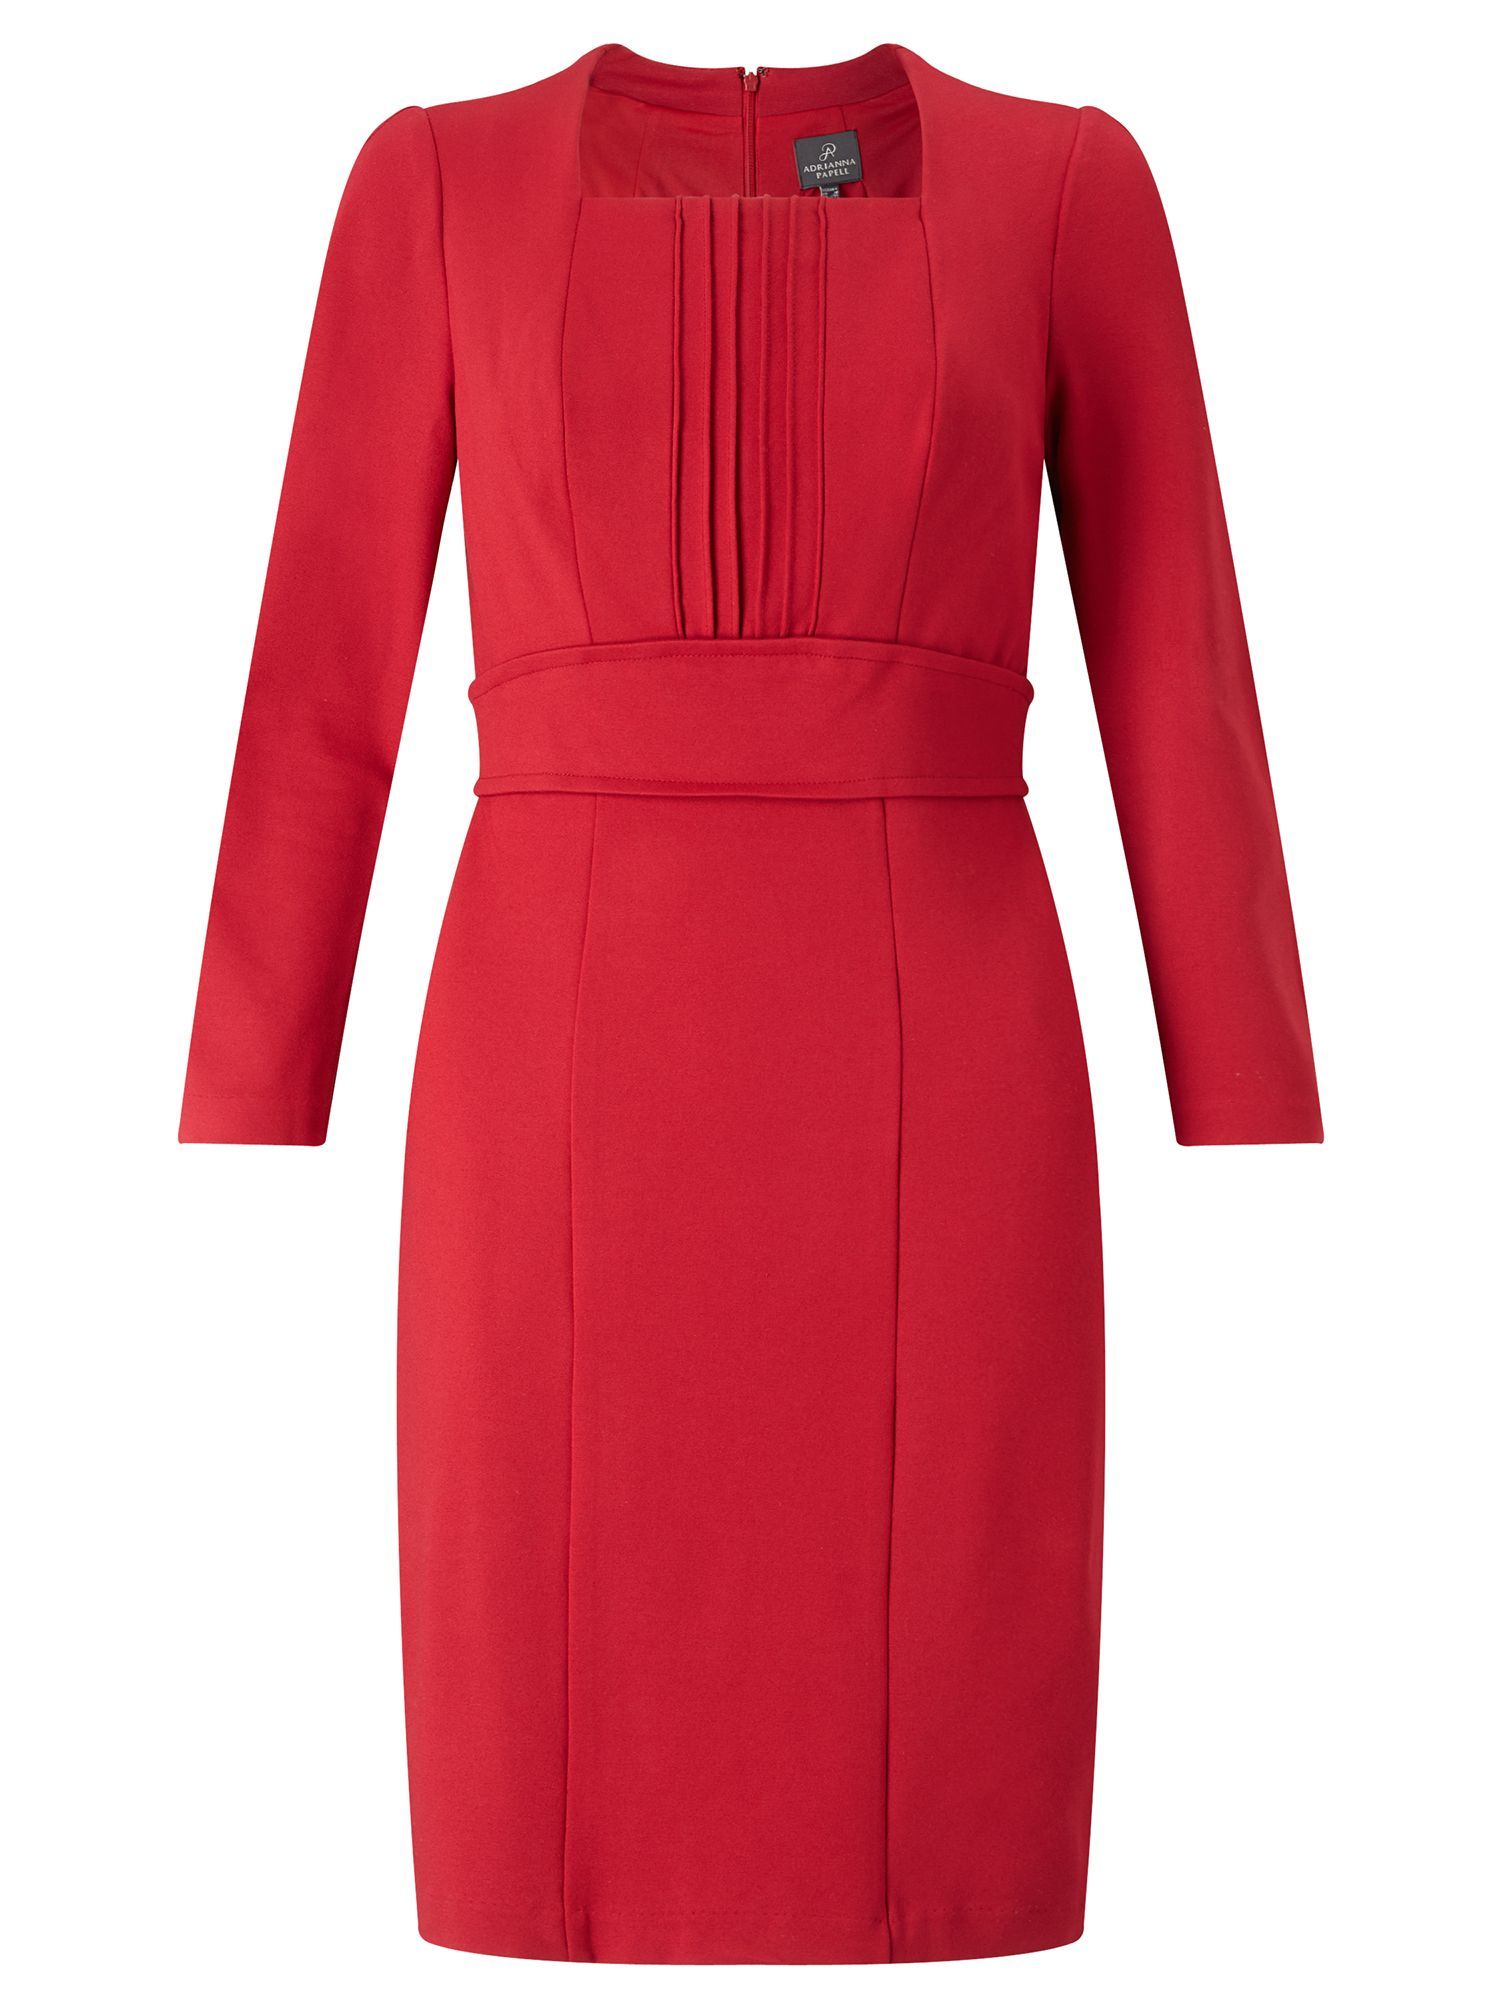 Adrianna Papell Long Sleeve Tailored Dress Red